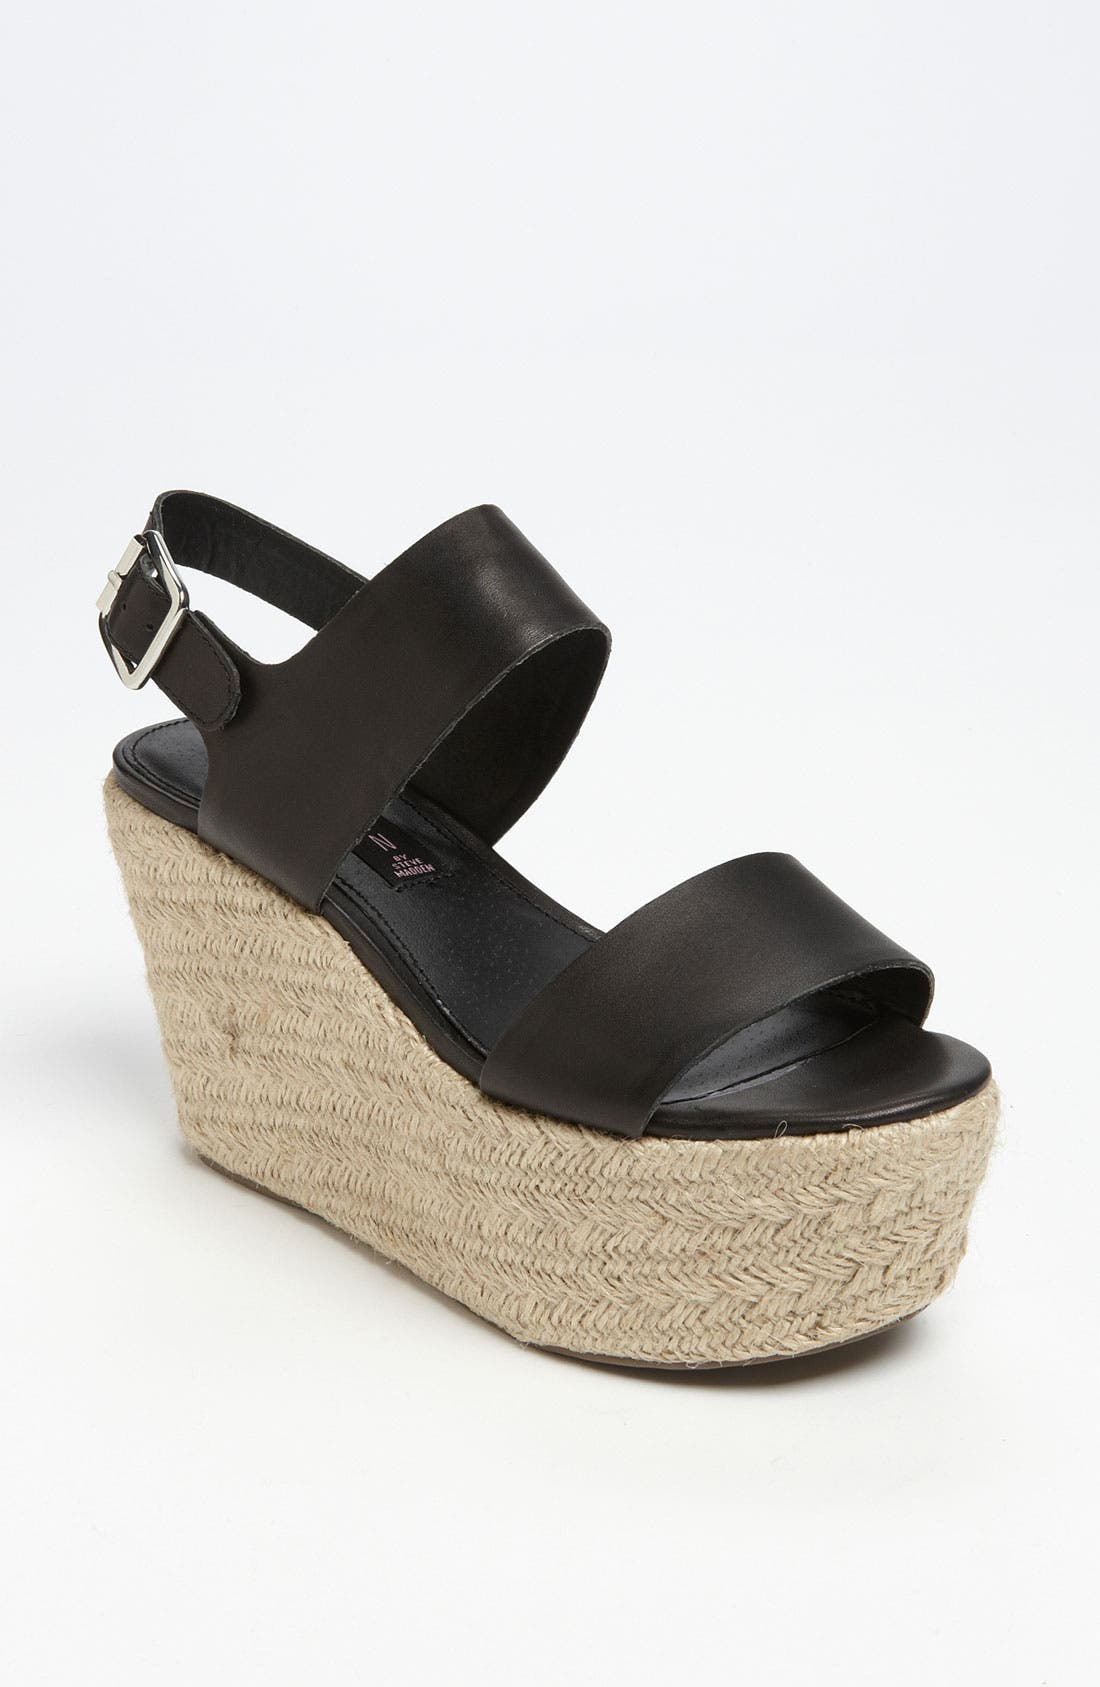 Alternate Image 1 Selected - Steven by Steve Madden 'Berklee' Sandal